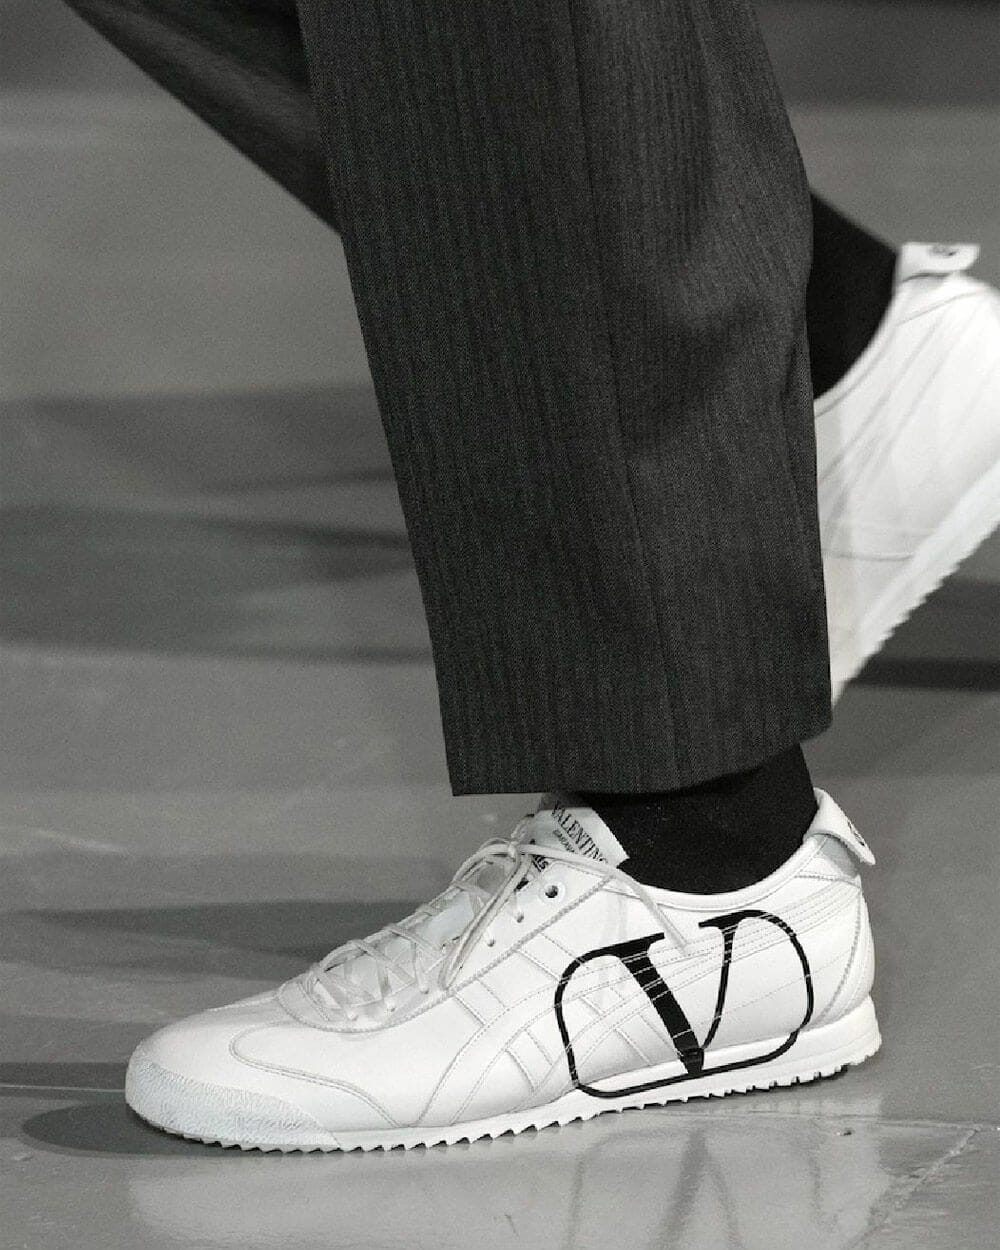 Valentino sneaker collaboration with Onitsuka Tiger